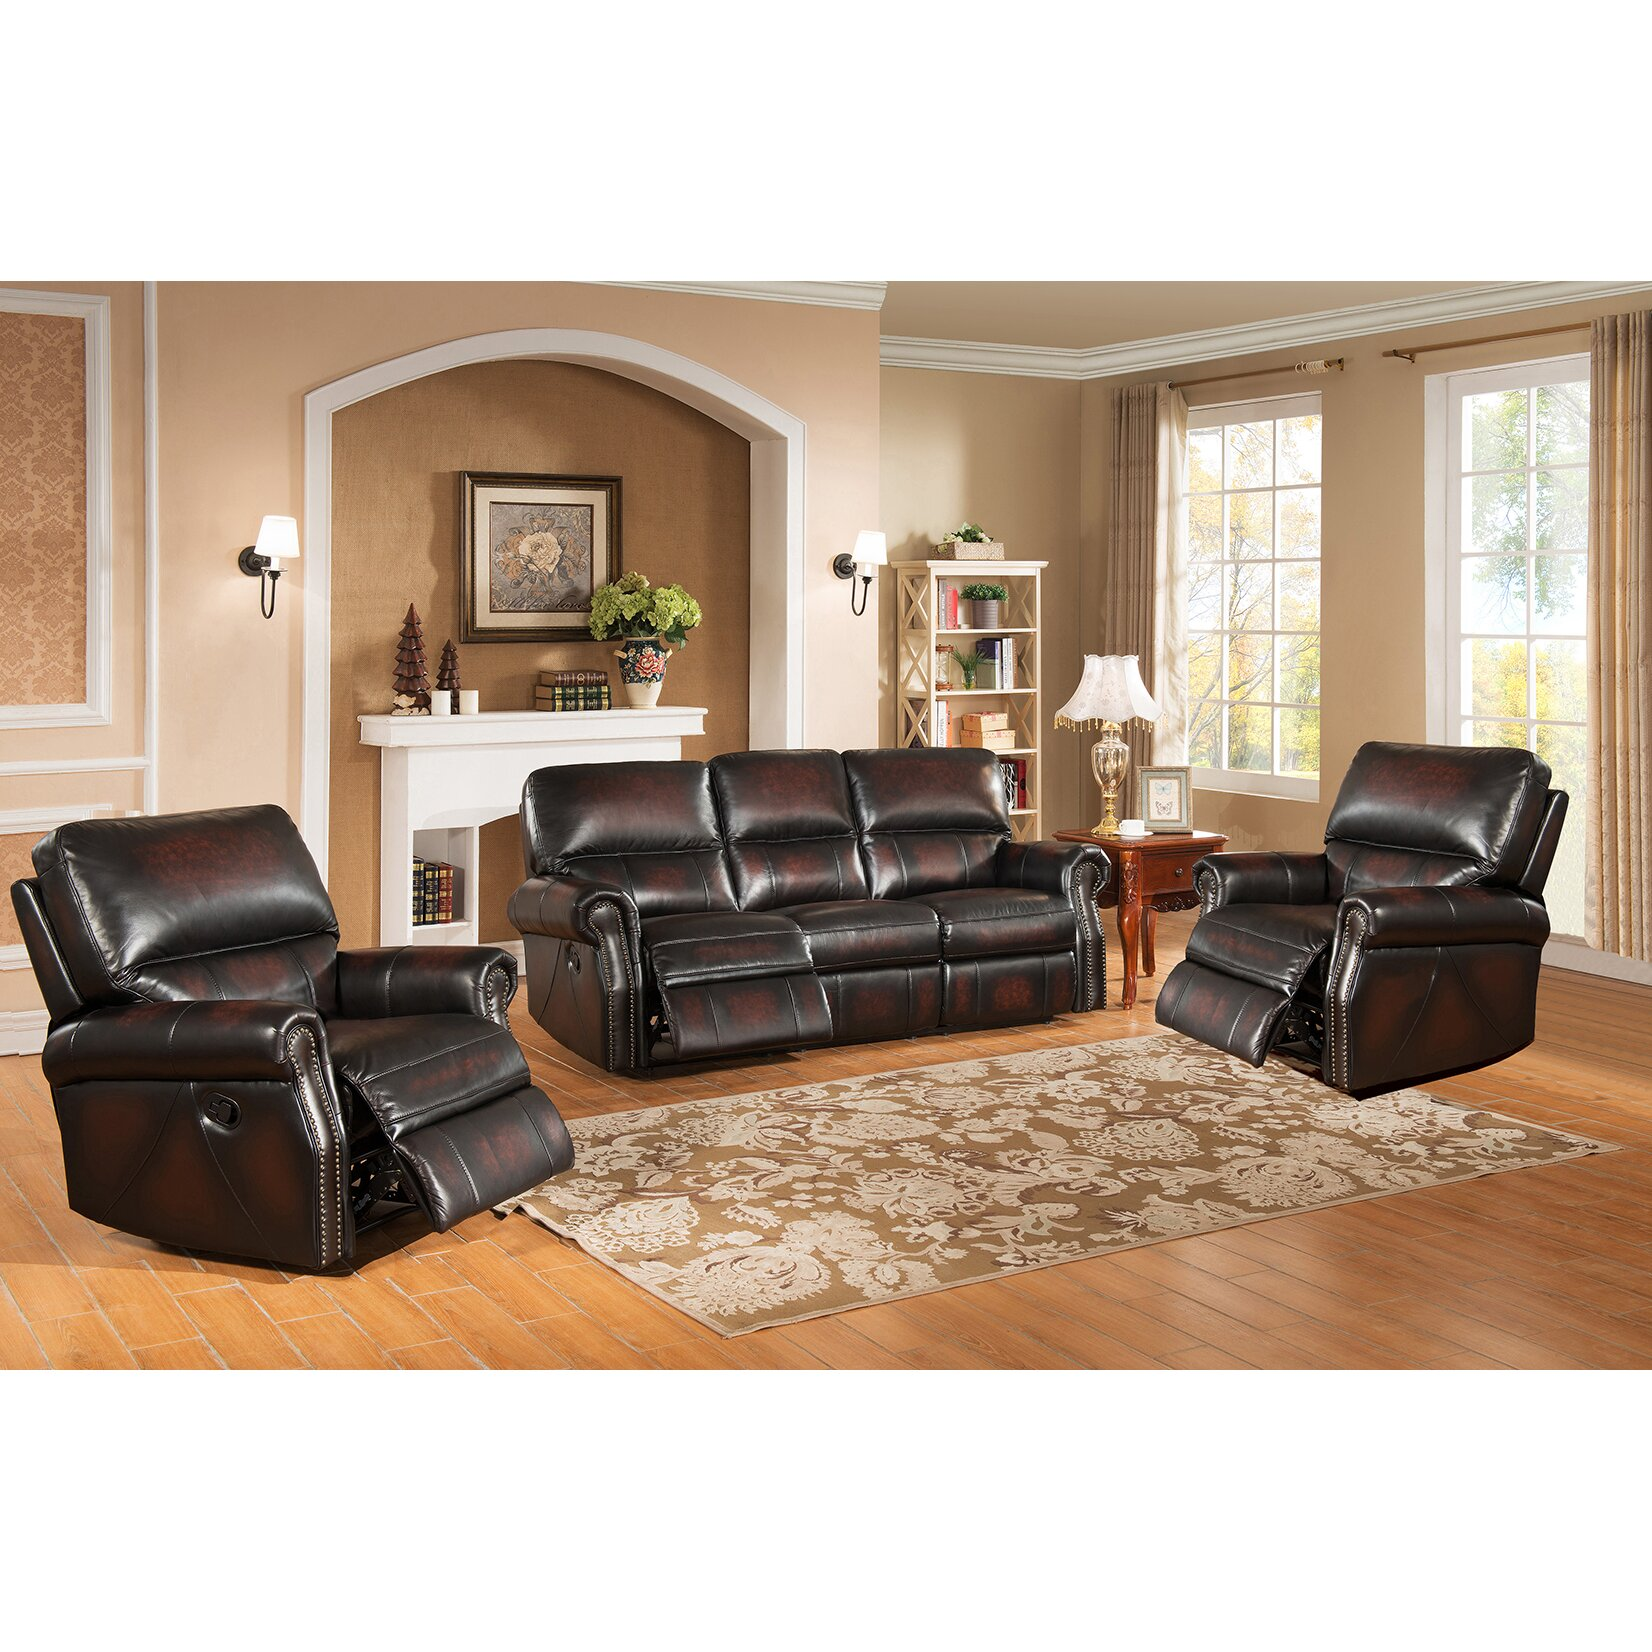 Amax nevada 3 piece leather living room set reviews for Living room 3 piece sets